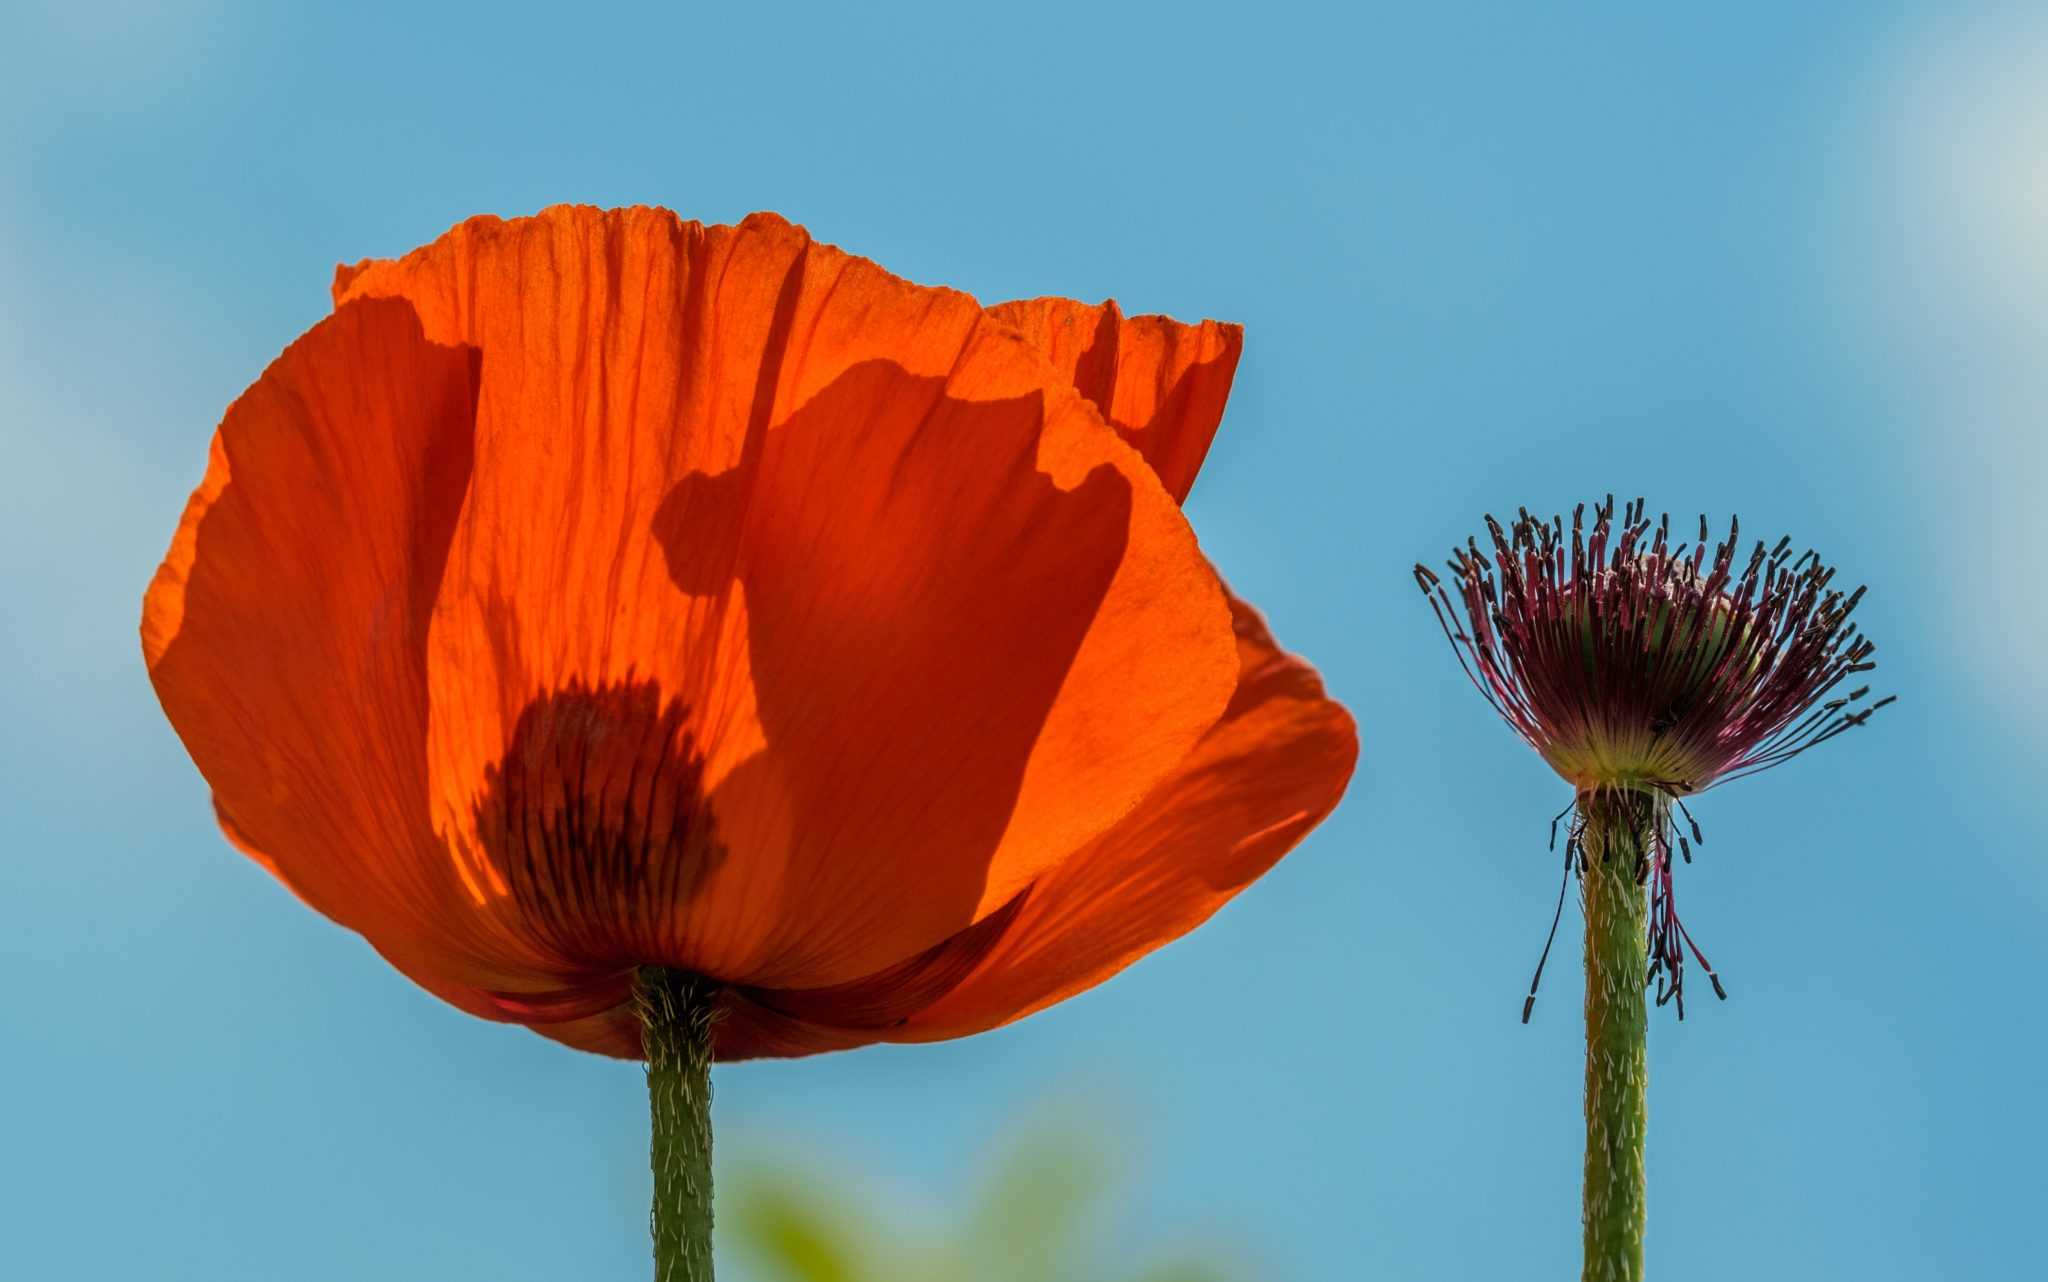 Grief Poppy on its own